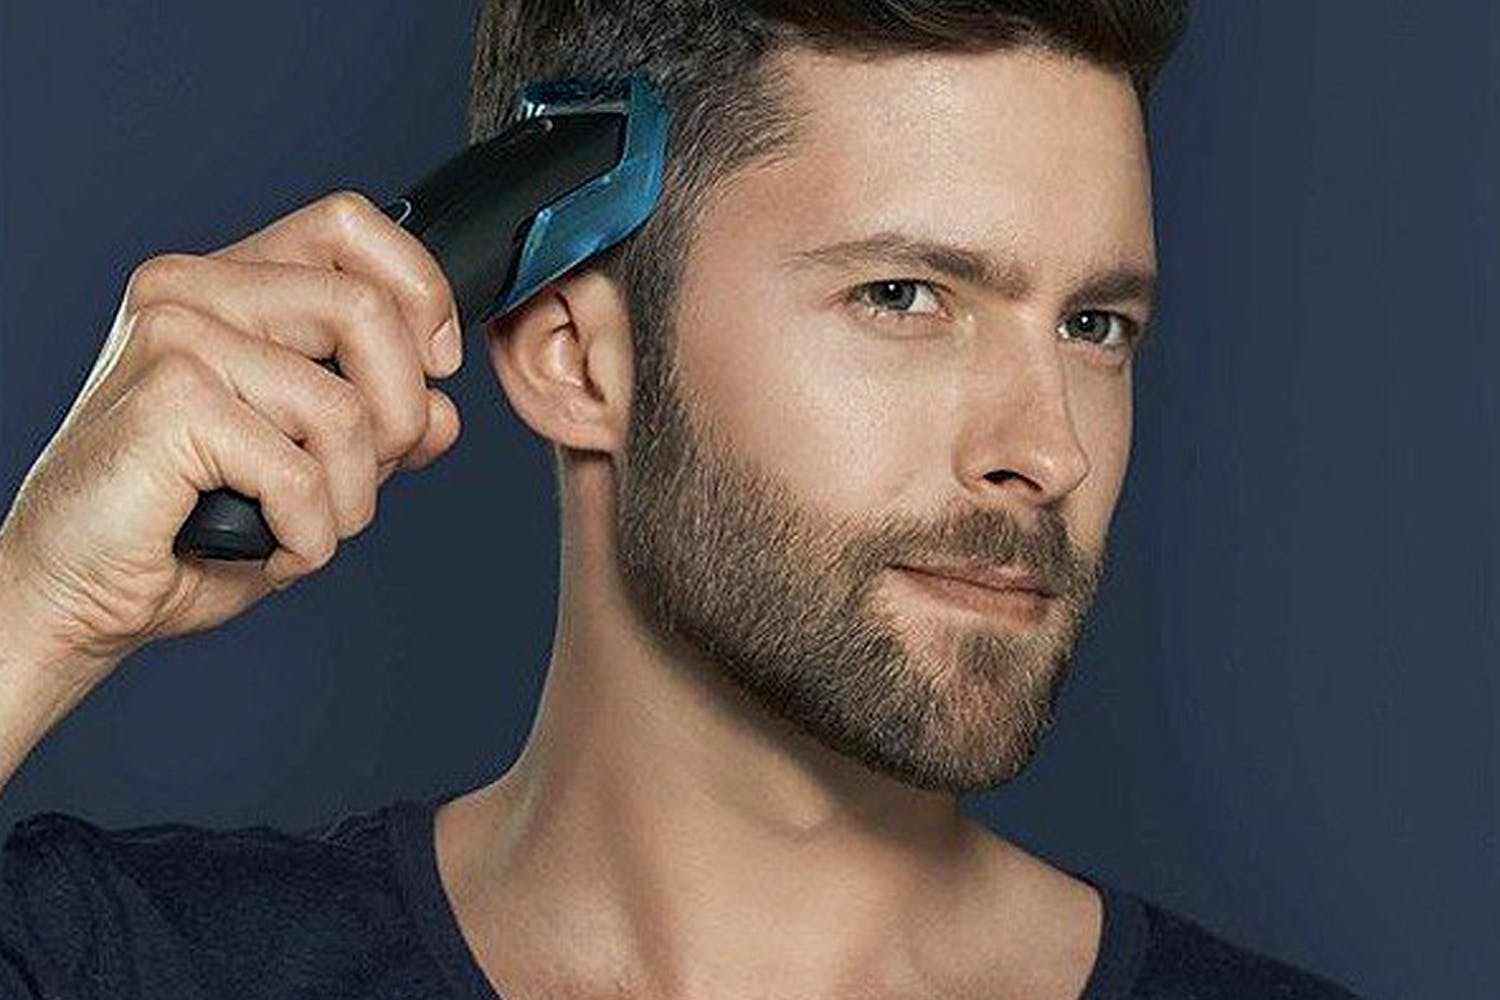 Braun Hair Clipper | BRN1129806